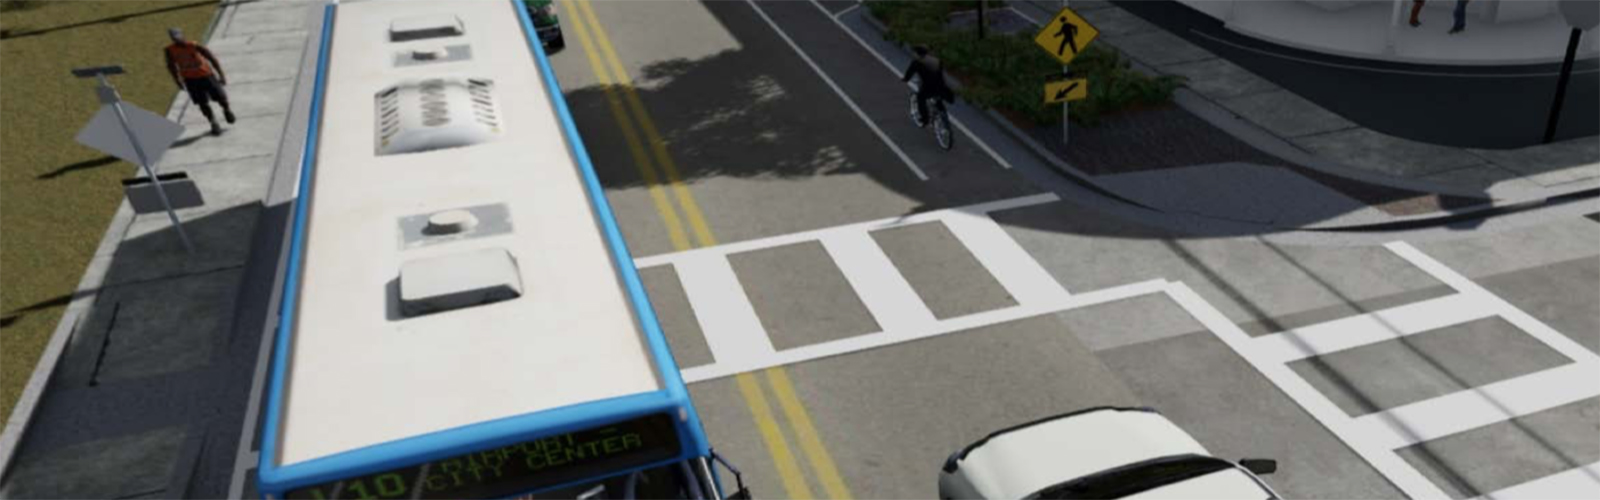 Tampa proposes improvements for city street designs.